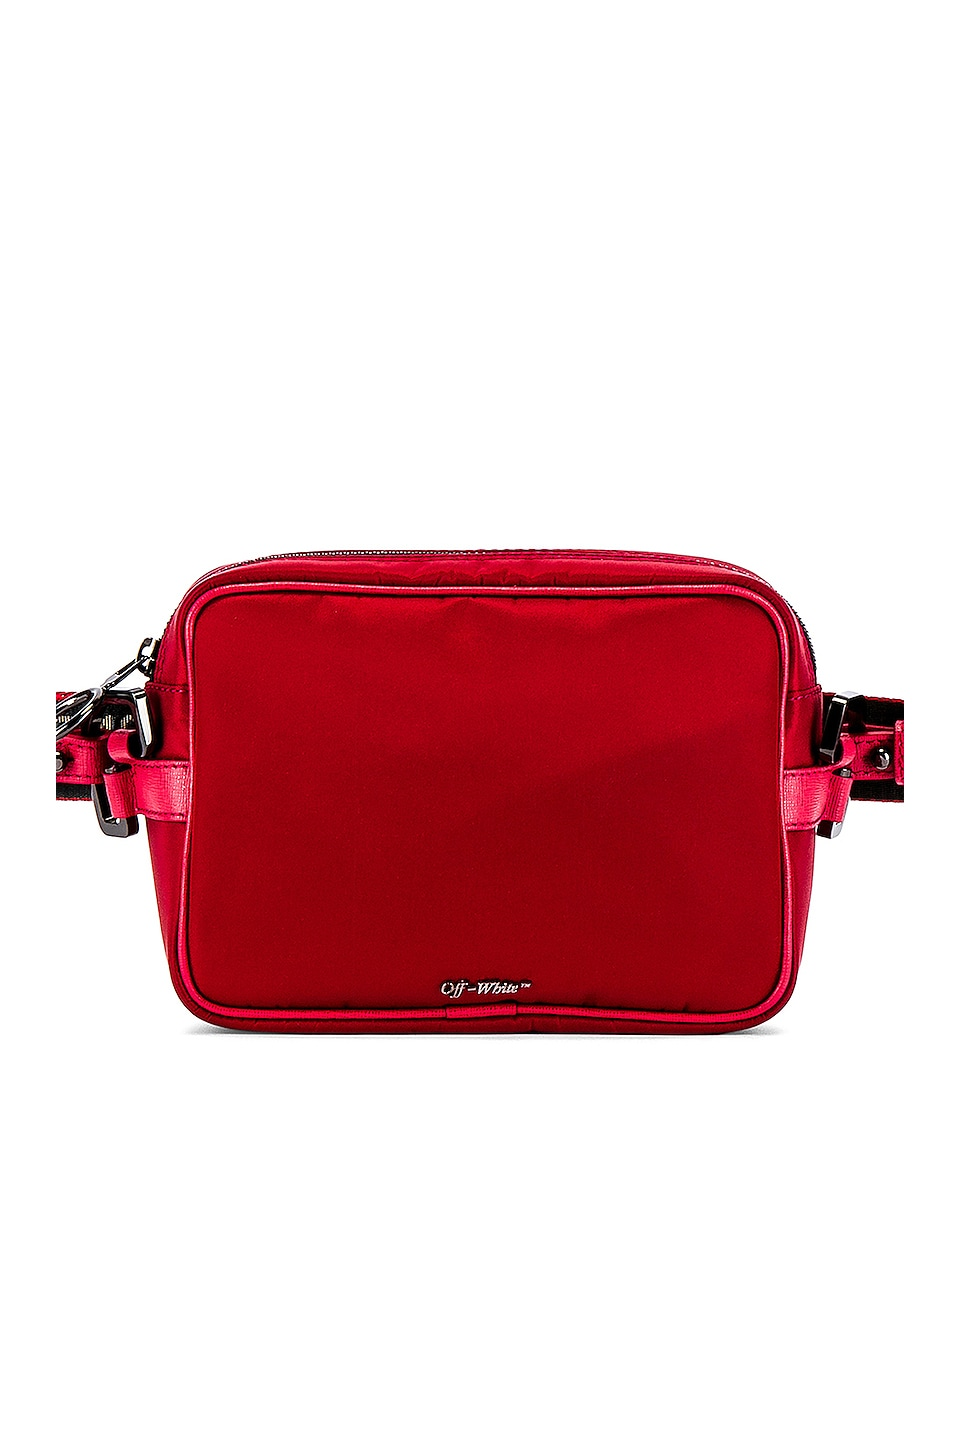 OFF-WHITE Crossbody Bag in Red